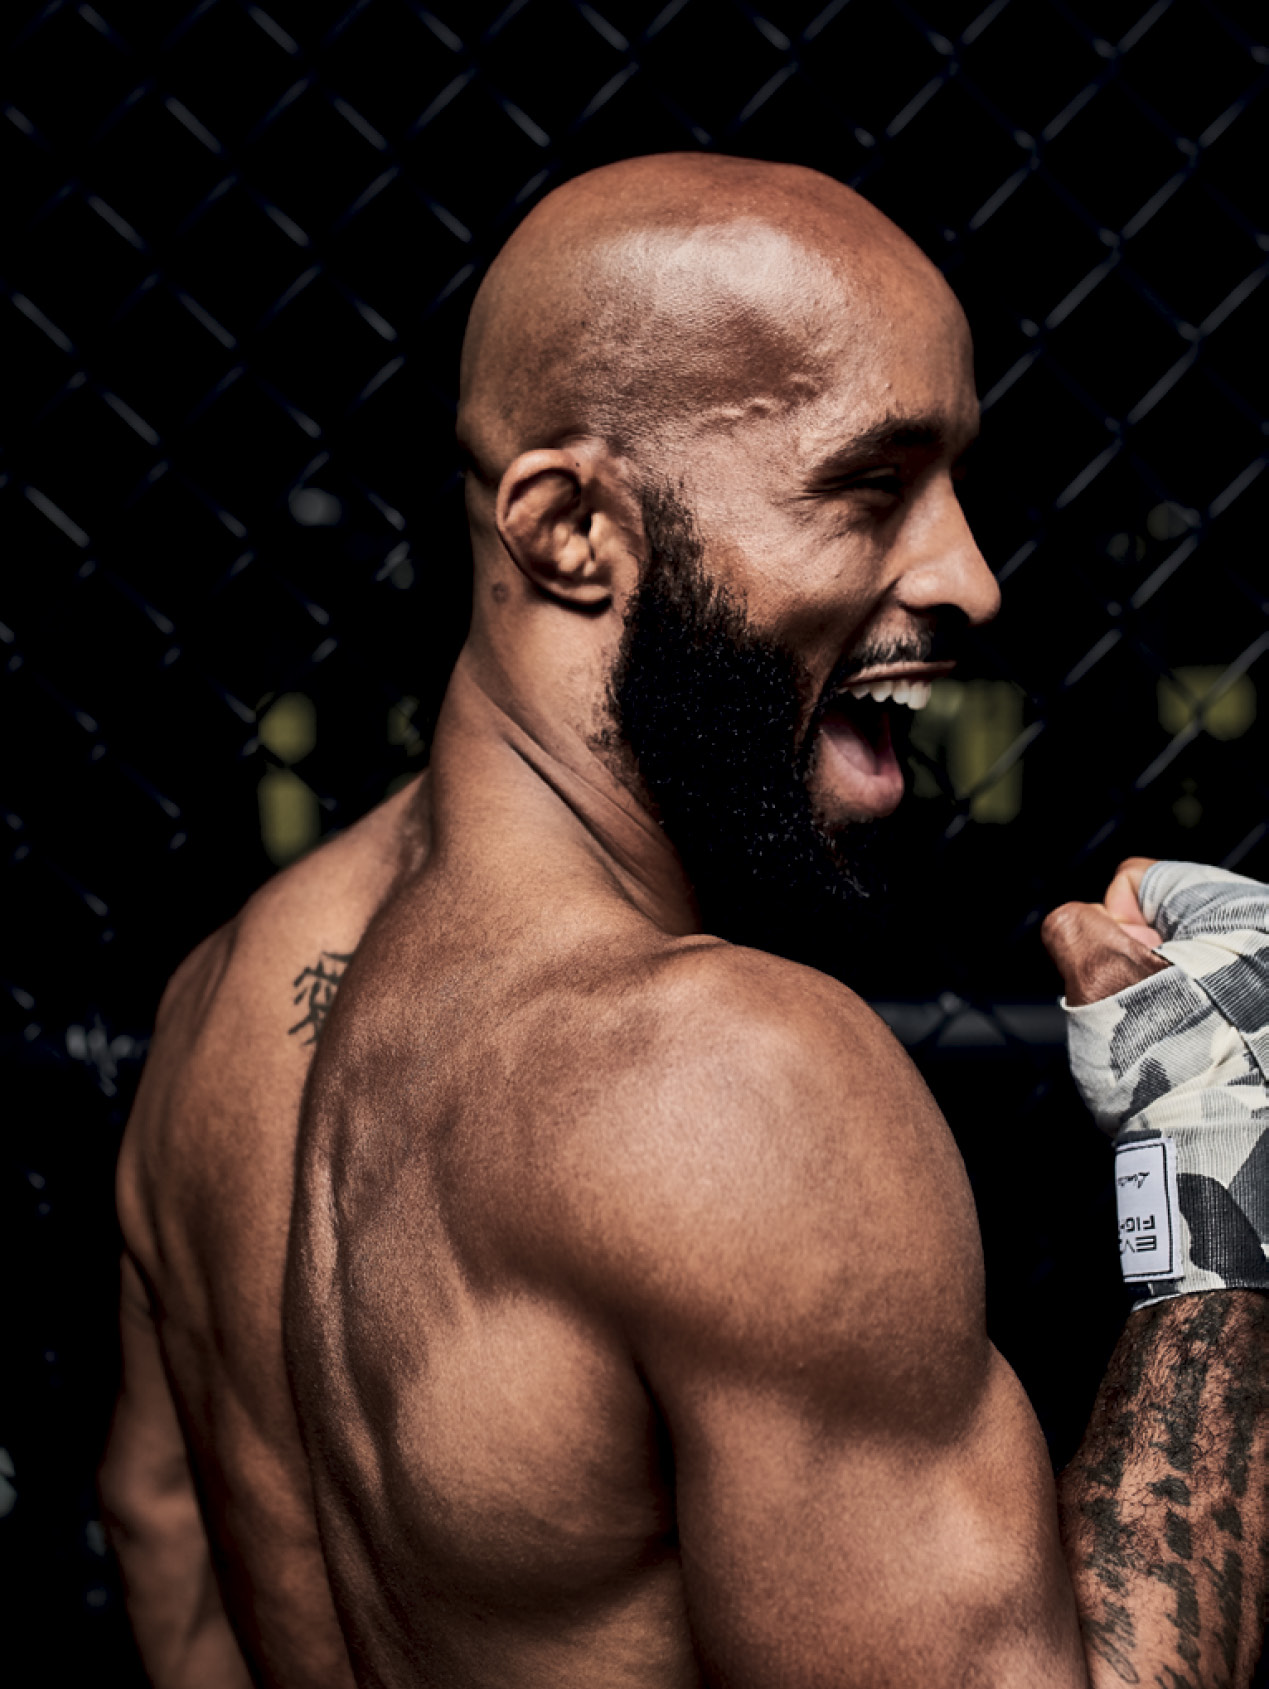 The Friendly Fighter: A moment with MMA world champ, Demetrious Johnson